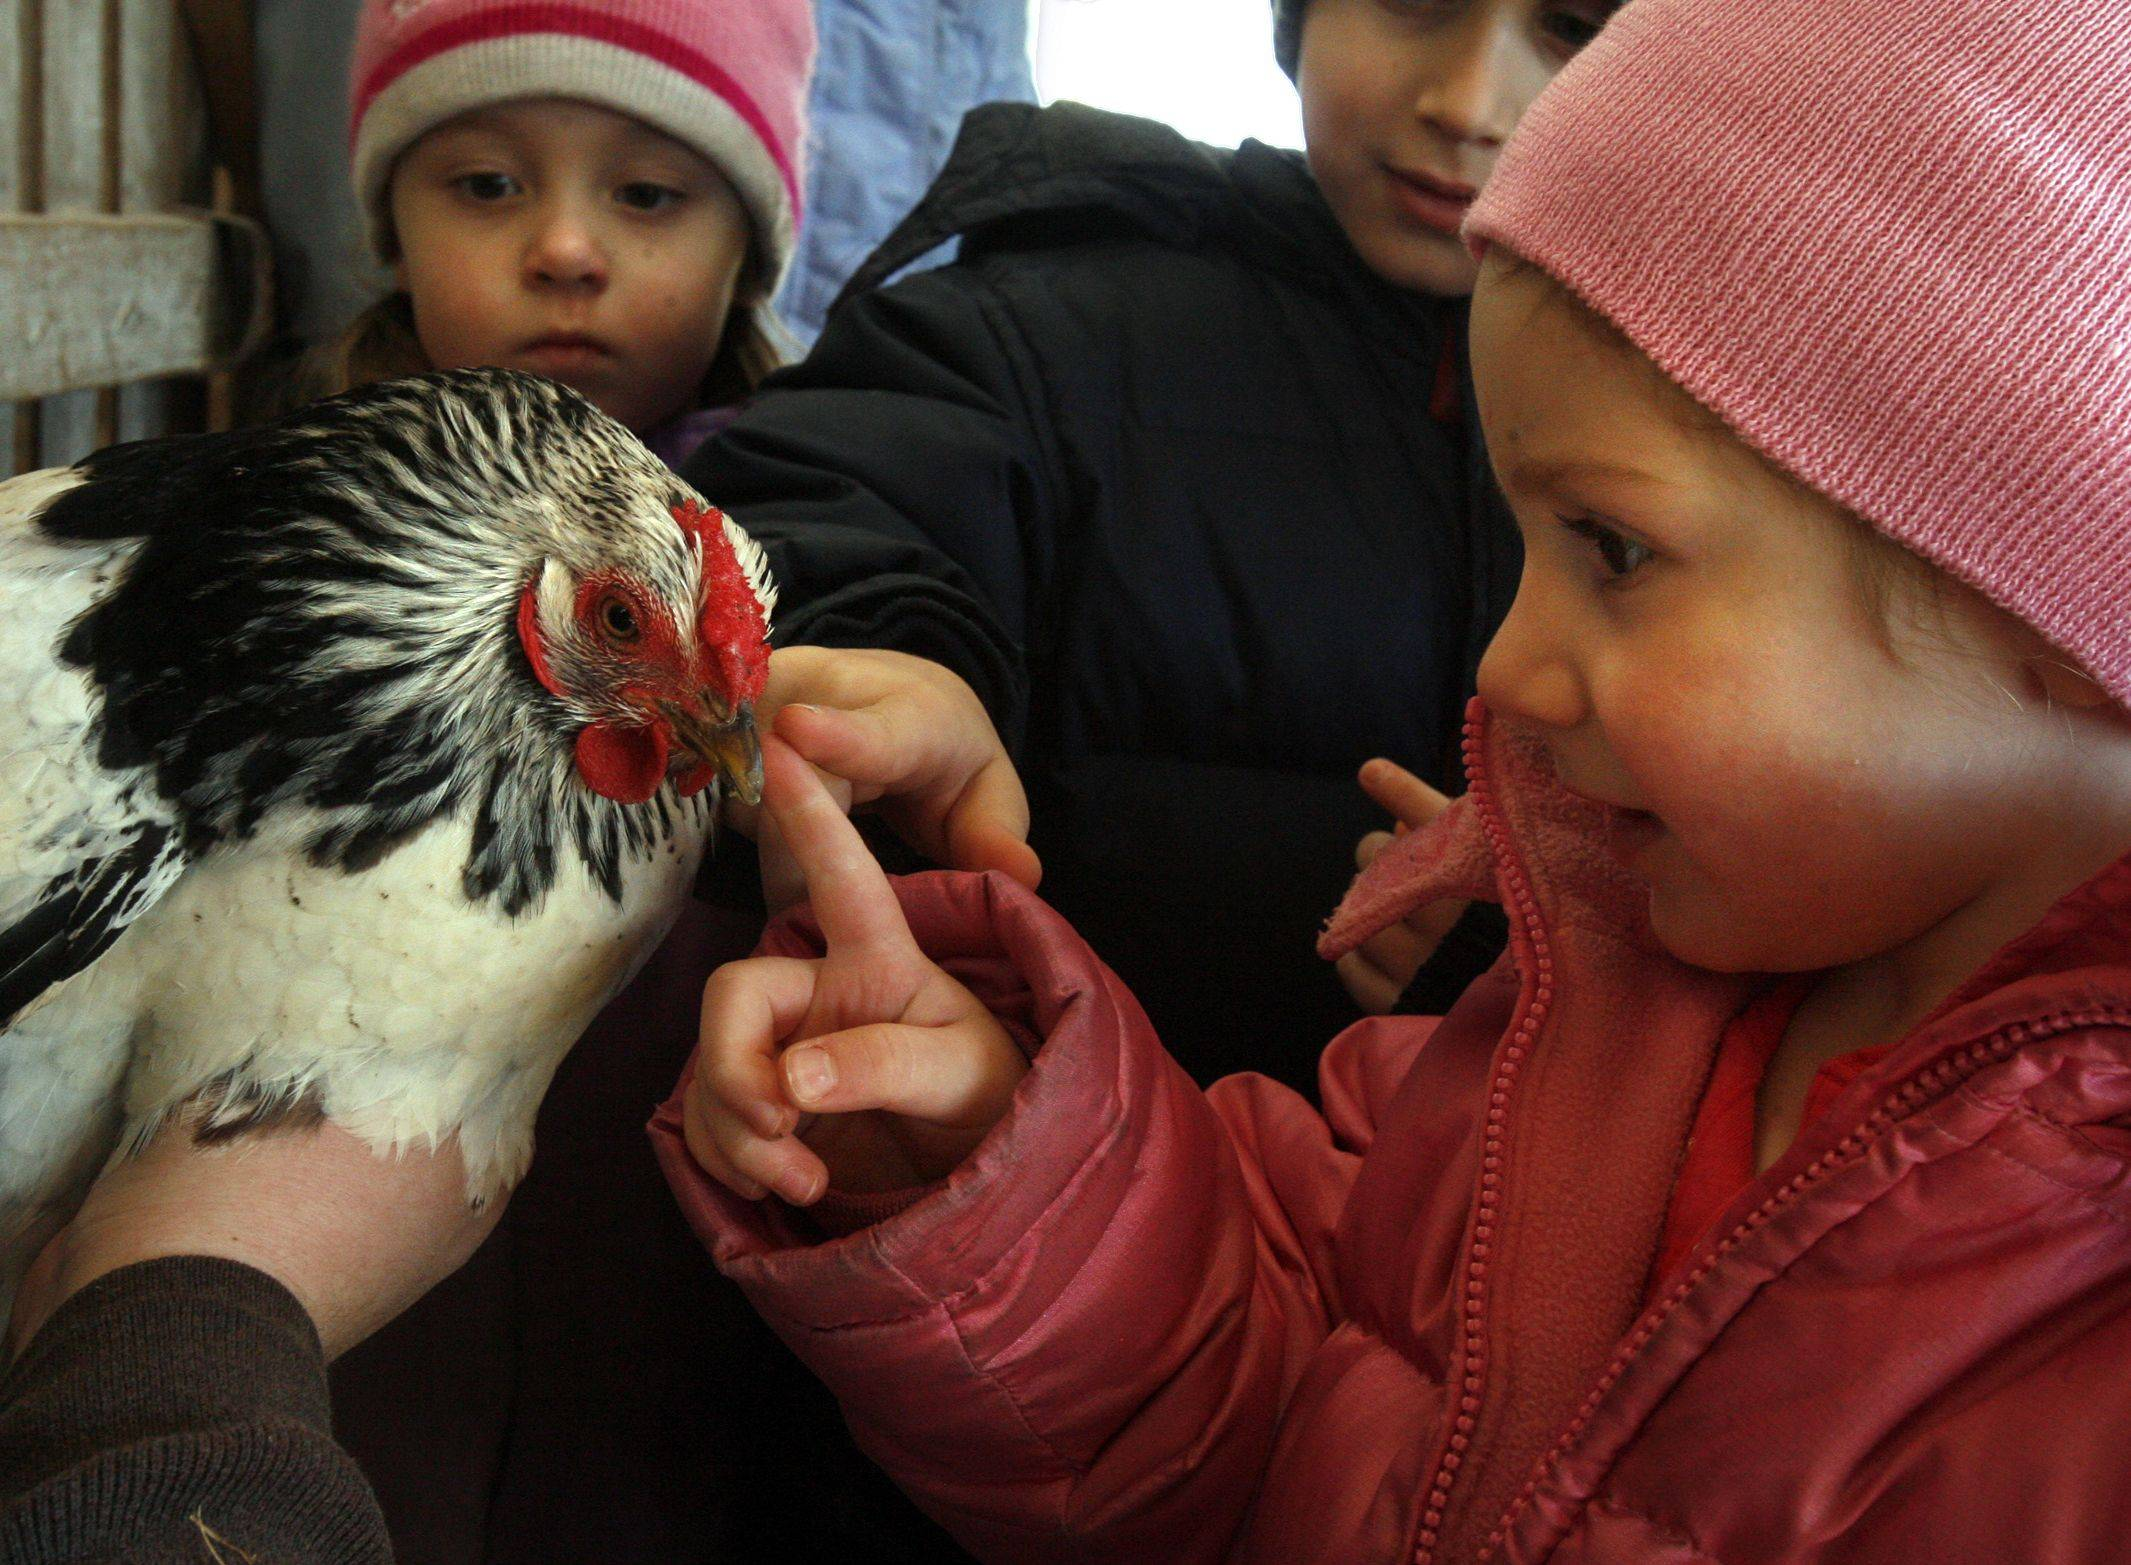 Tessa Muenz, 3, of St. Charles, touches a chicken during a hands-on tour and seminar Saturday at Primrose Farm in St. Charles.